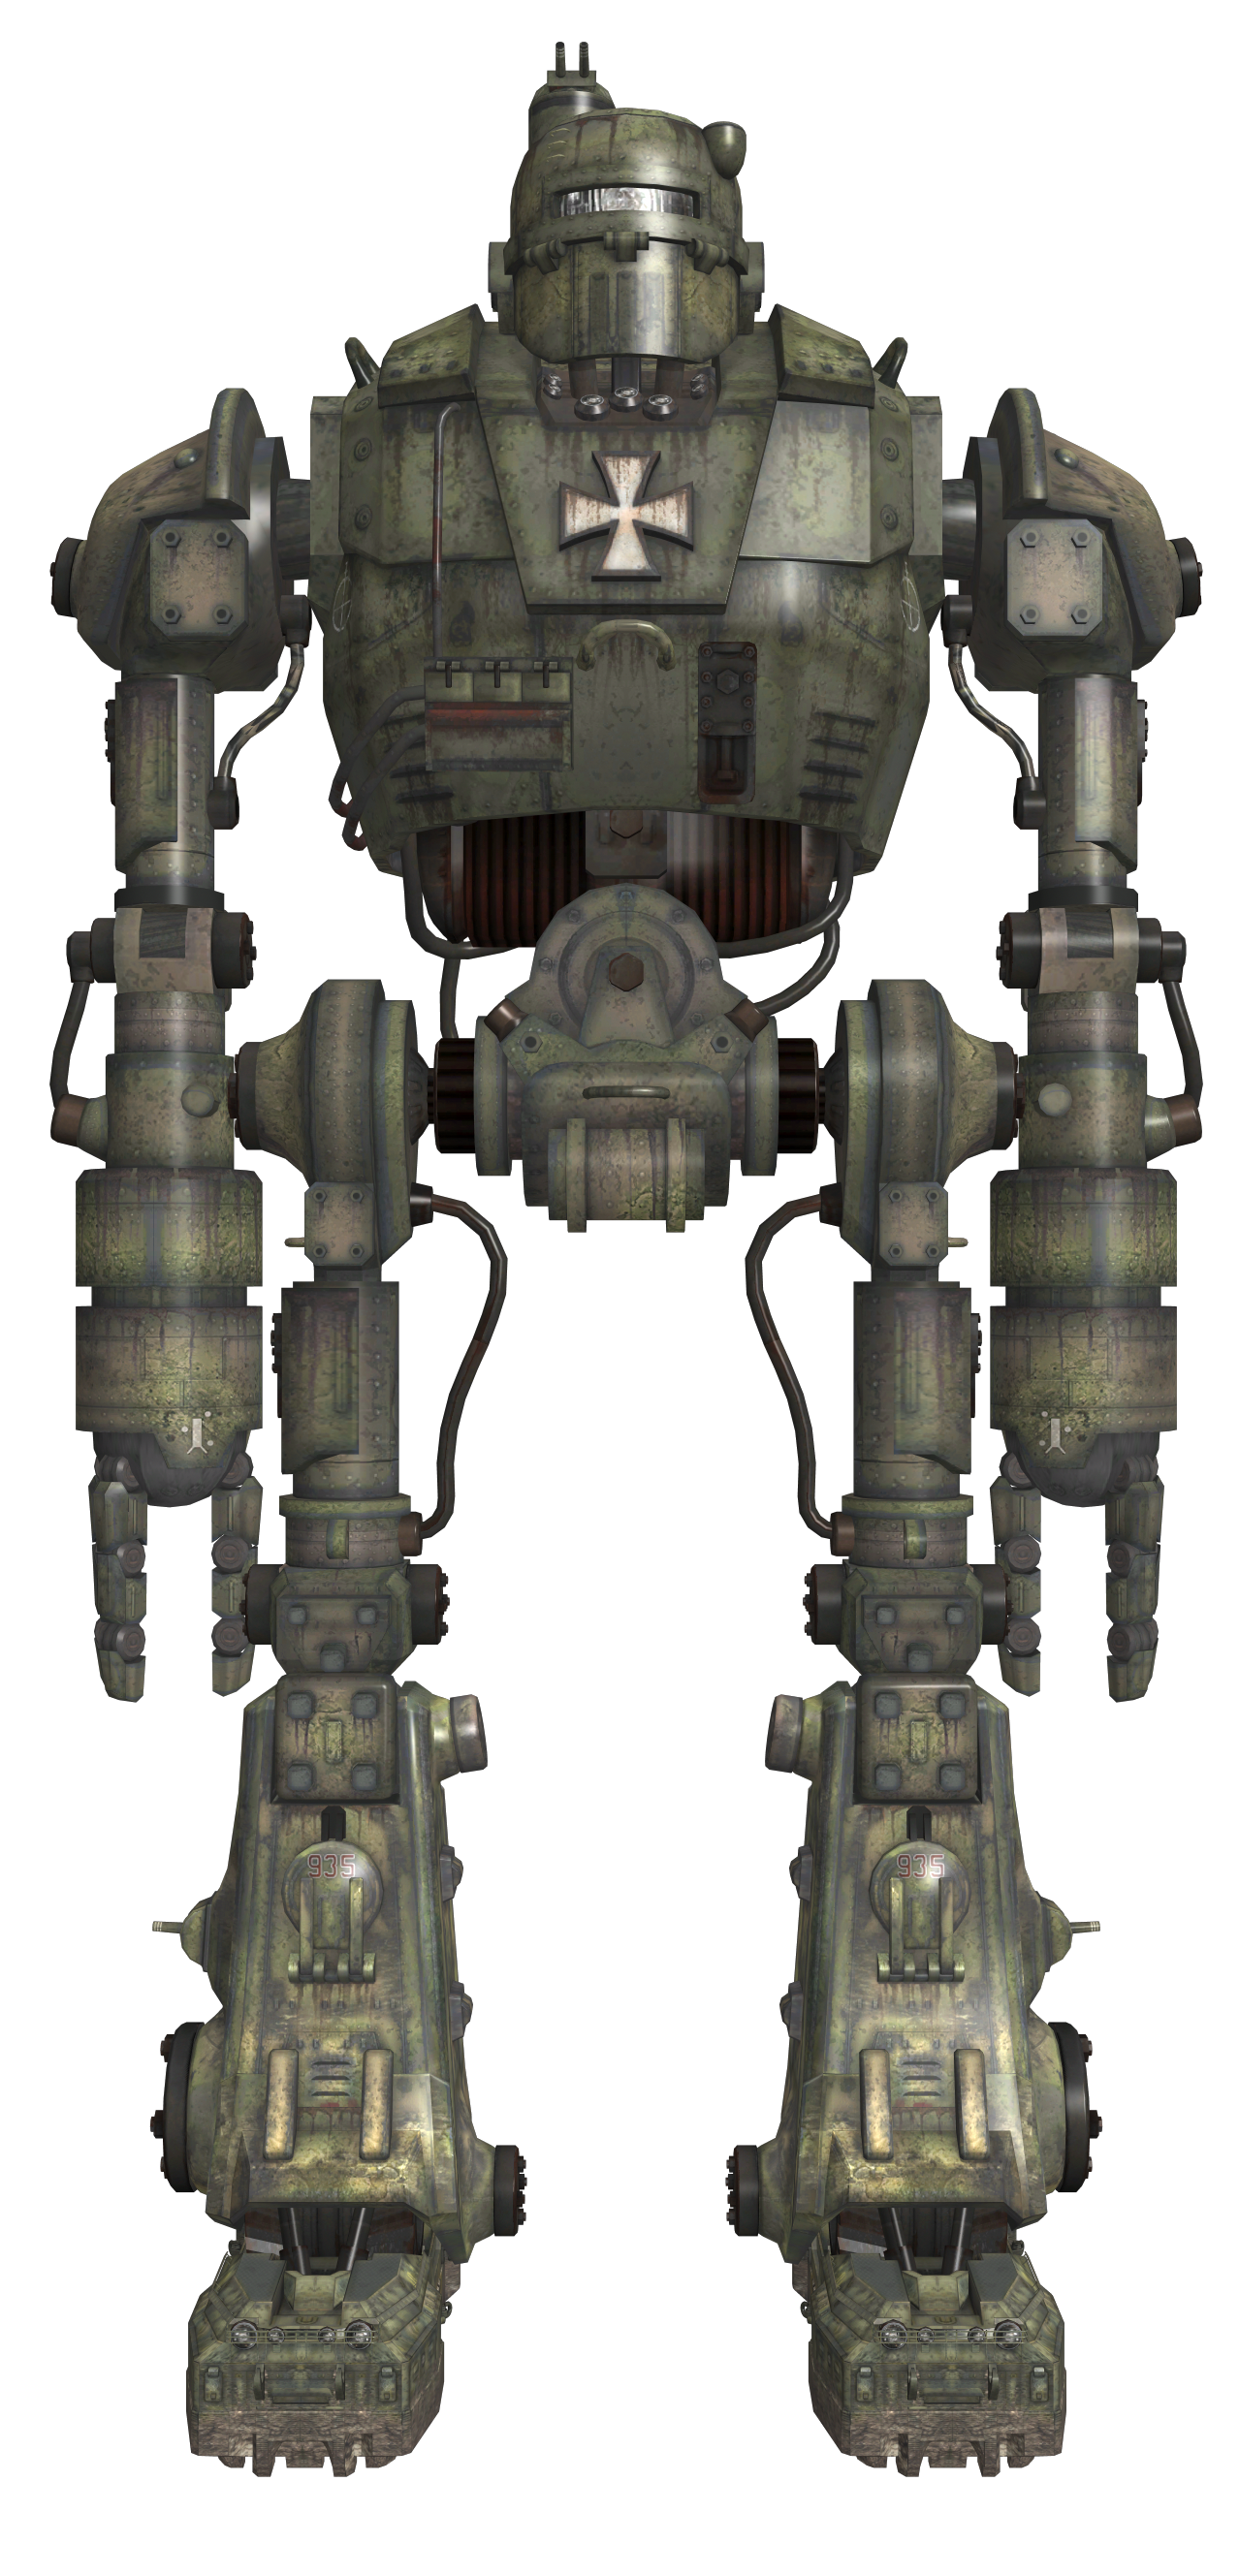 The giant zombies png. Image robot model boii